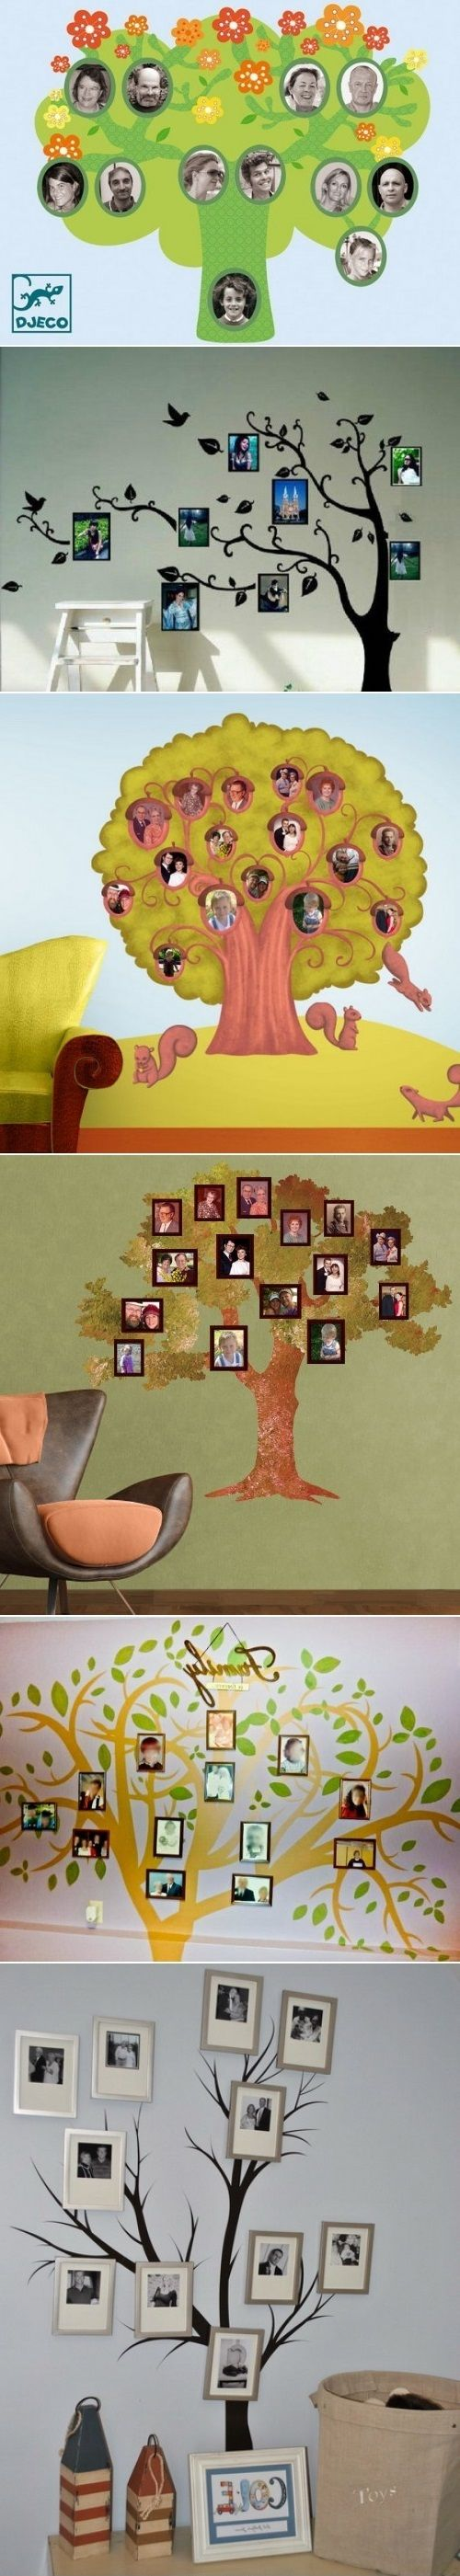 Árbol genealógico en la pared